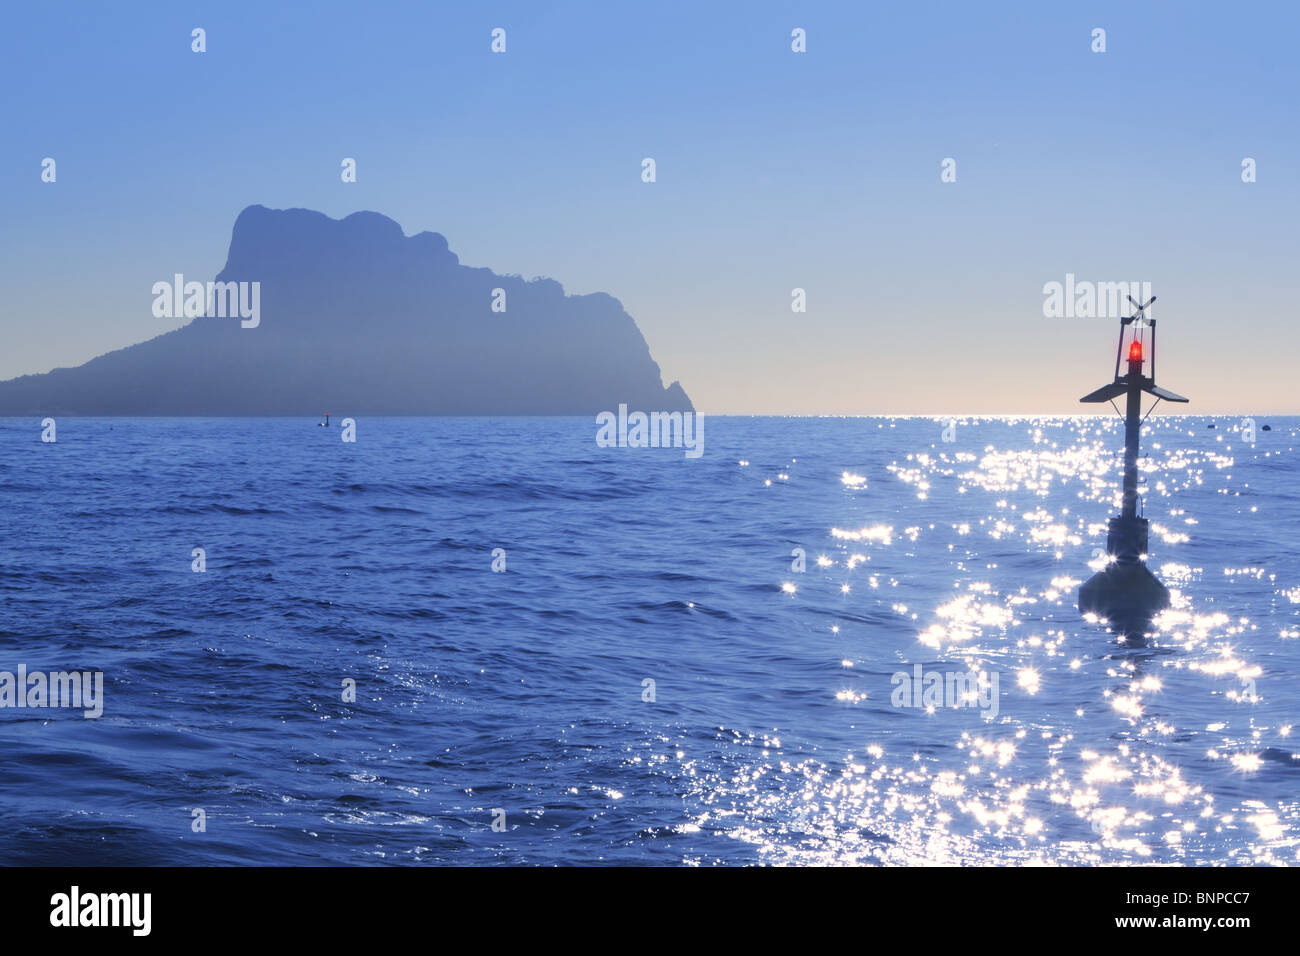 Bilder Mit Hintergrundbeleuchtung Backlight Stockfotos And Backlight Bilder Alamy